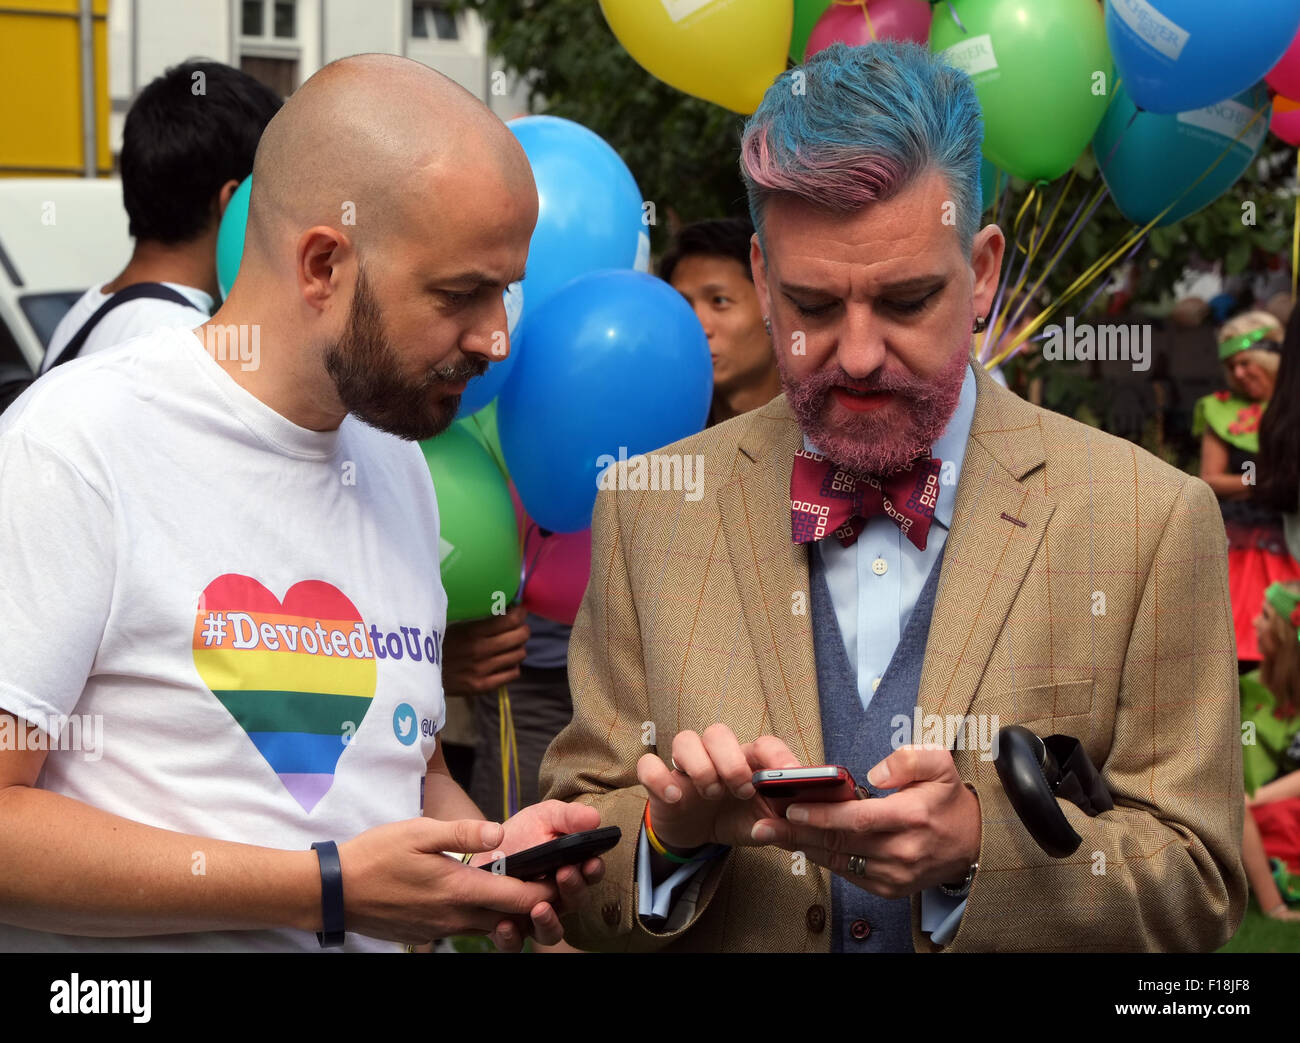 Gay men using their smartphones while preparing for the Manchester Pride 2015 Big Parade through the City Centre - Stock Image